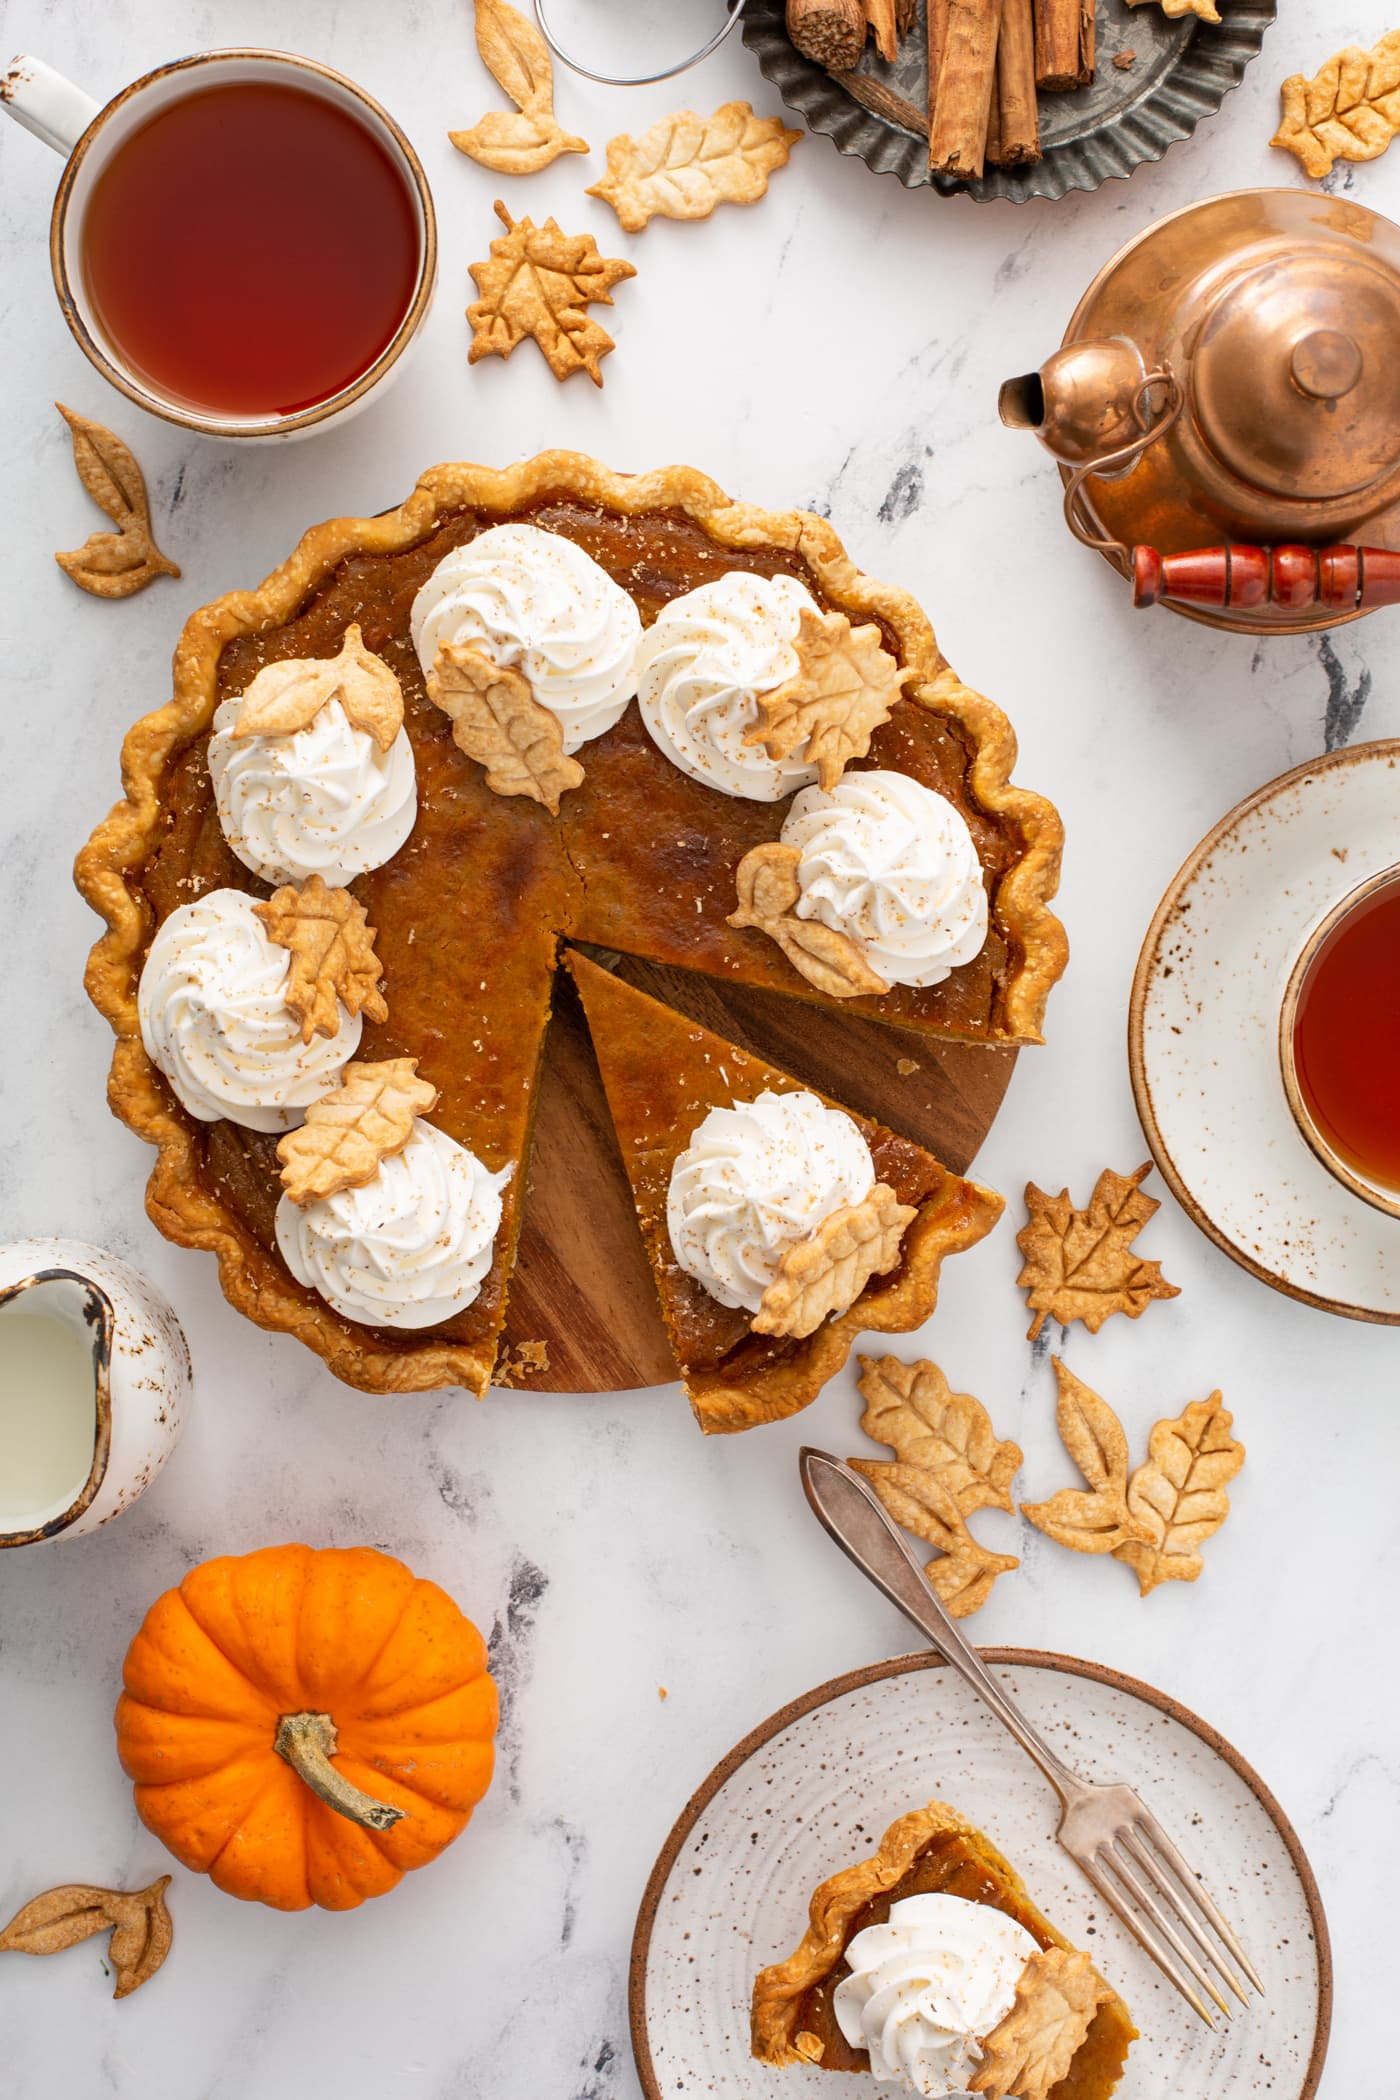 A photo of a pumpkin pie topped with piped whipped cream and stamped pie crust leaves taken from above with a slice pulled out.